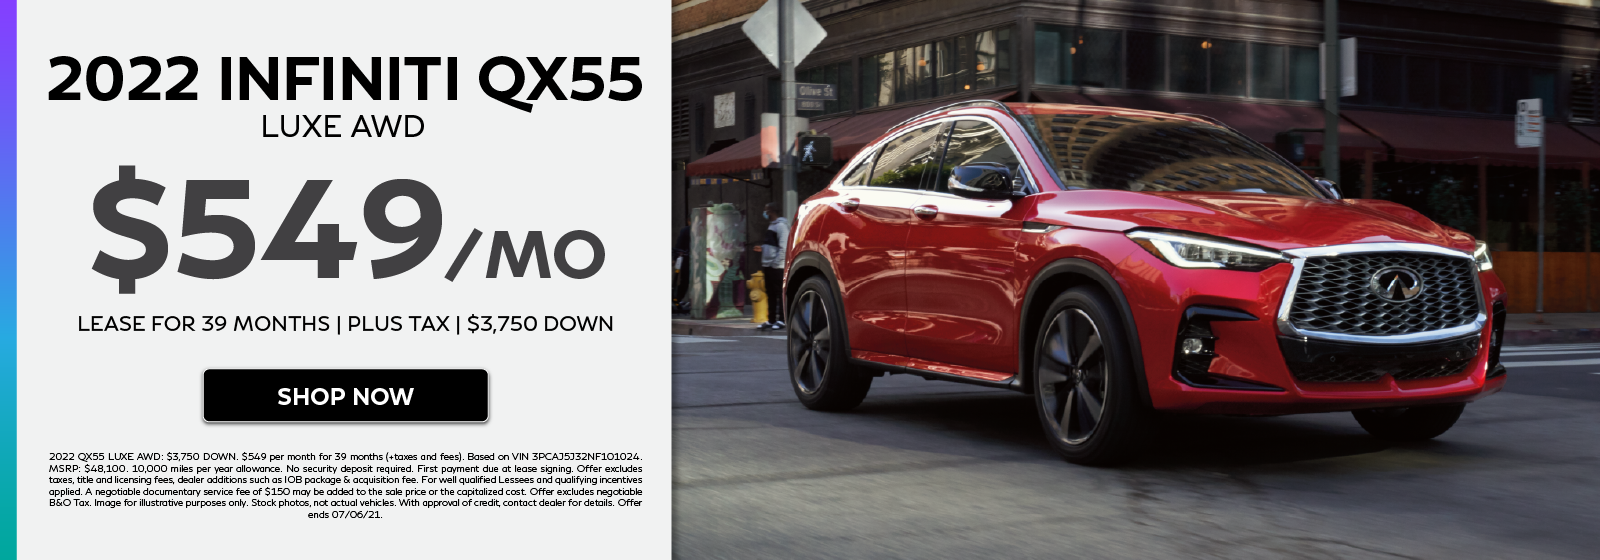 2022 INFINITI QX55 LUXE AWD lease offer. Click to shop now.